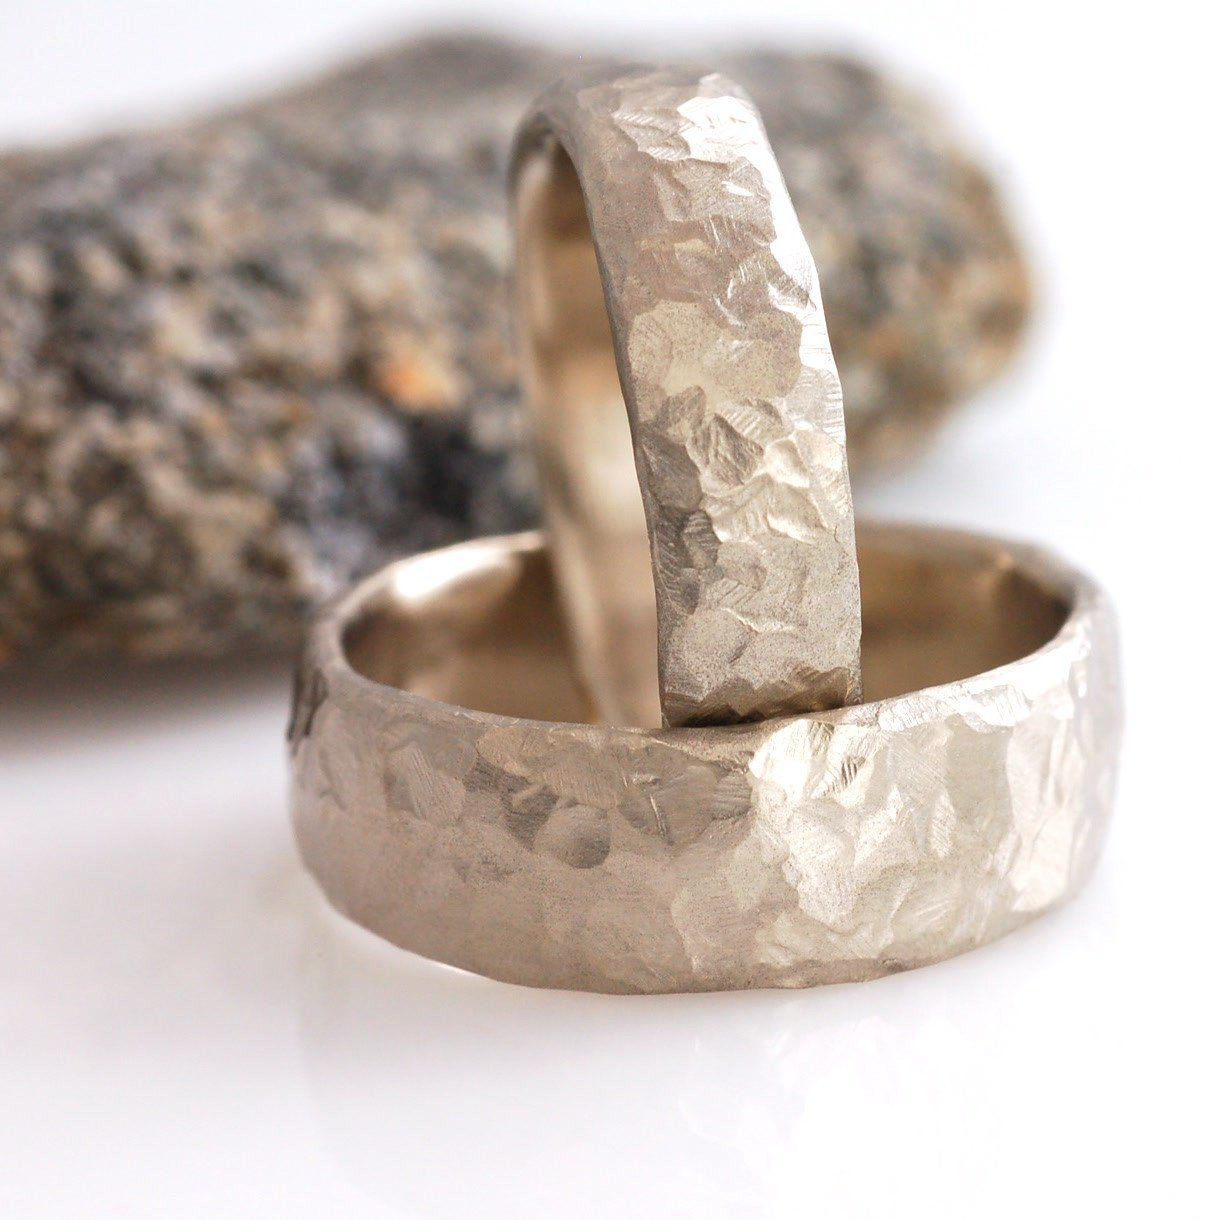 Love Rocks Texture Rings - wide versions in 14k palladium white gold - nature inspired wedding rings by Beth Cyr